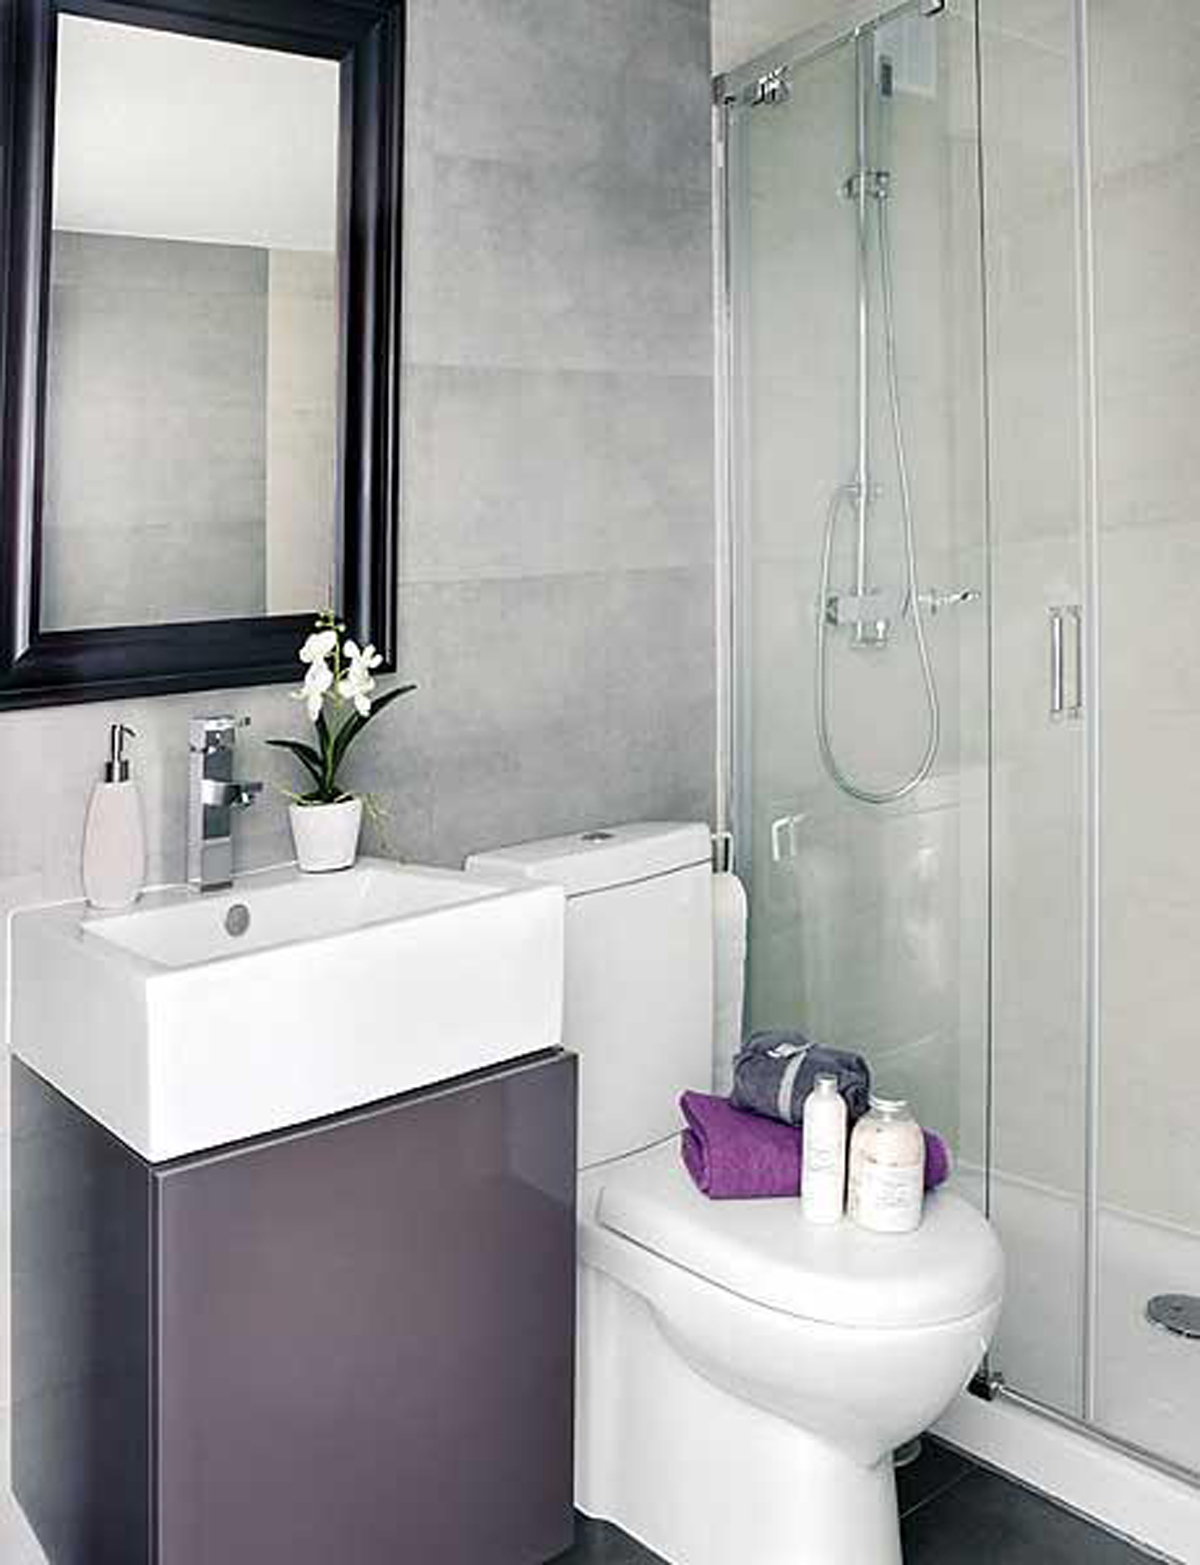 interior-inspiring-apartment-design-bathroom-design-interior-small-bathrooms-bathroom-design-ideas-with-shower-and-elongated-toilet-also-undermount-bath-sink-mirror-flower-pot-ornament-ceramics-tiles